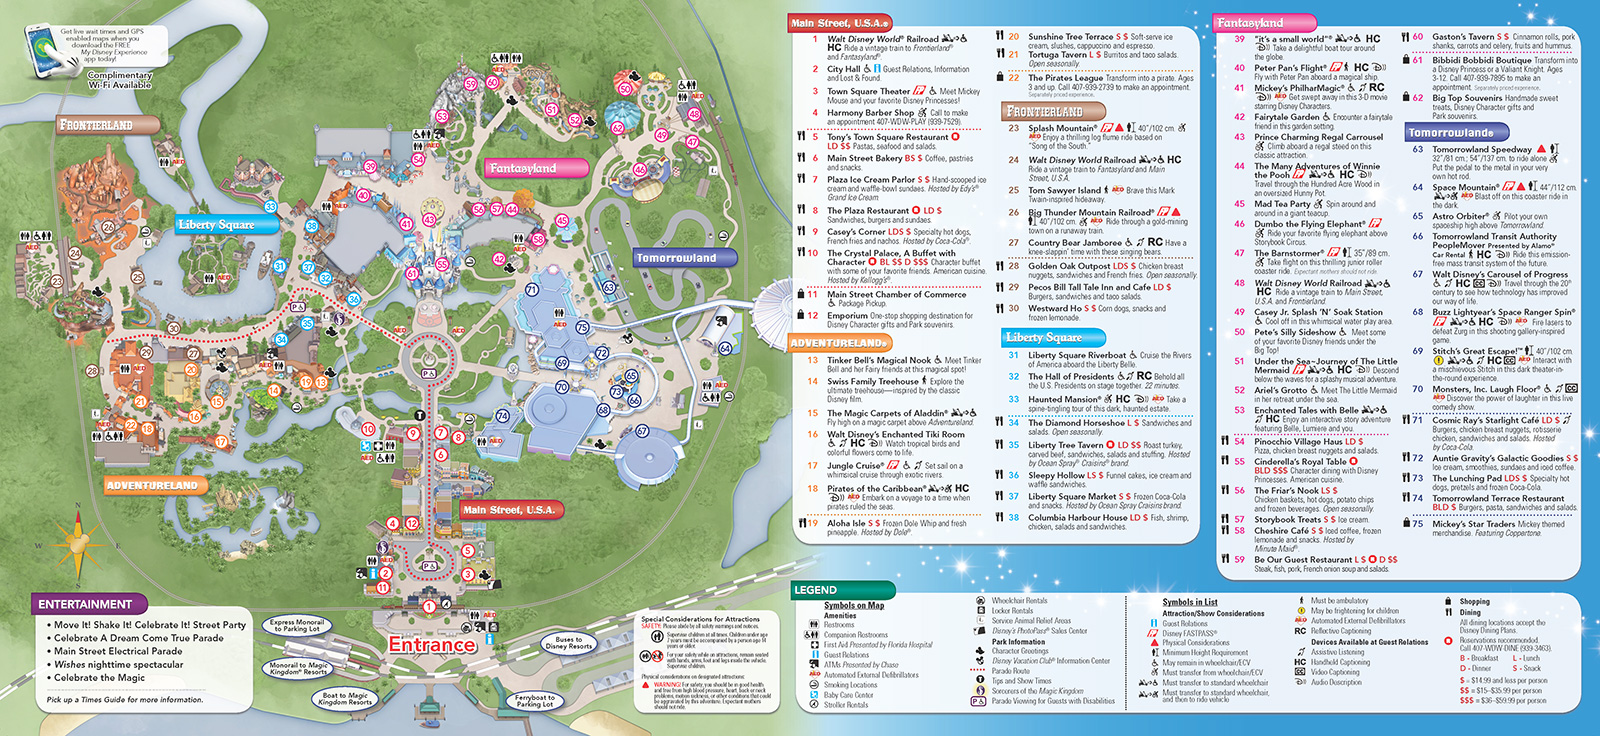 New 2013 Park Maps and Times Guides - Photo 8 of 20